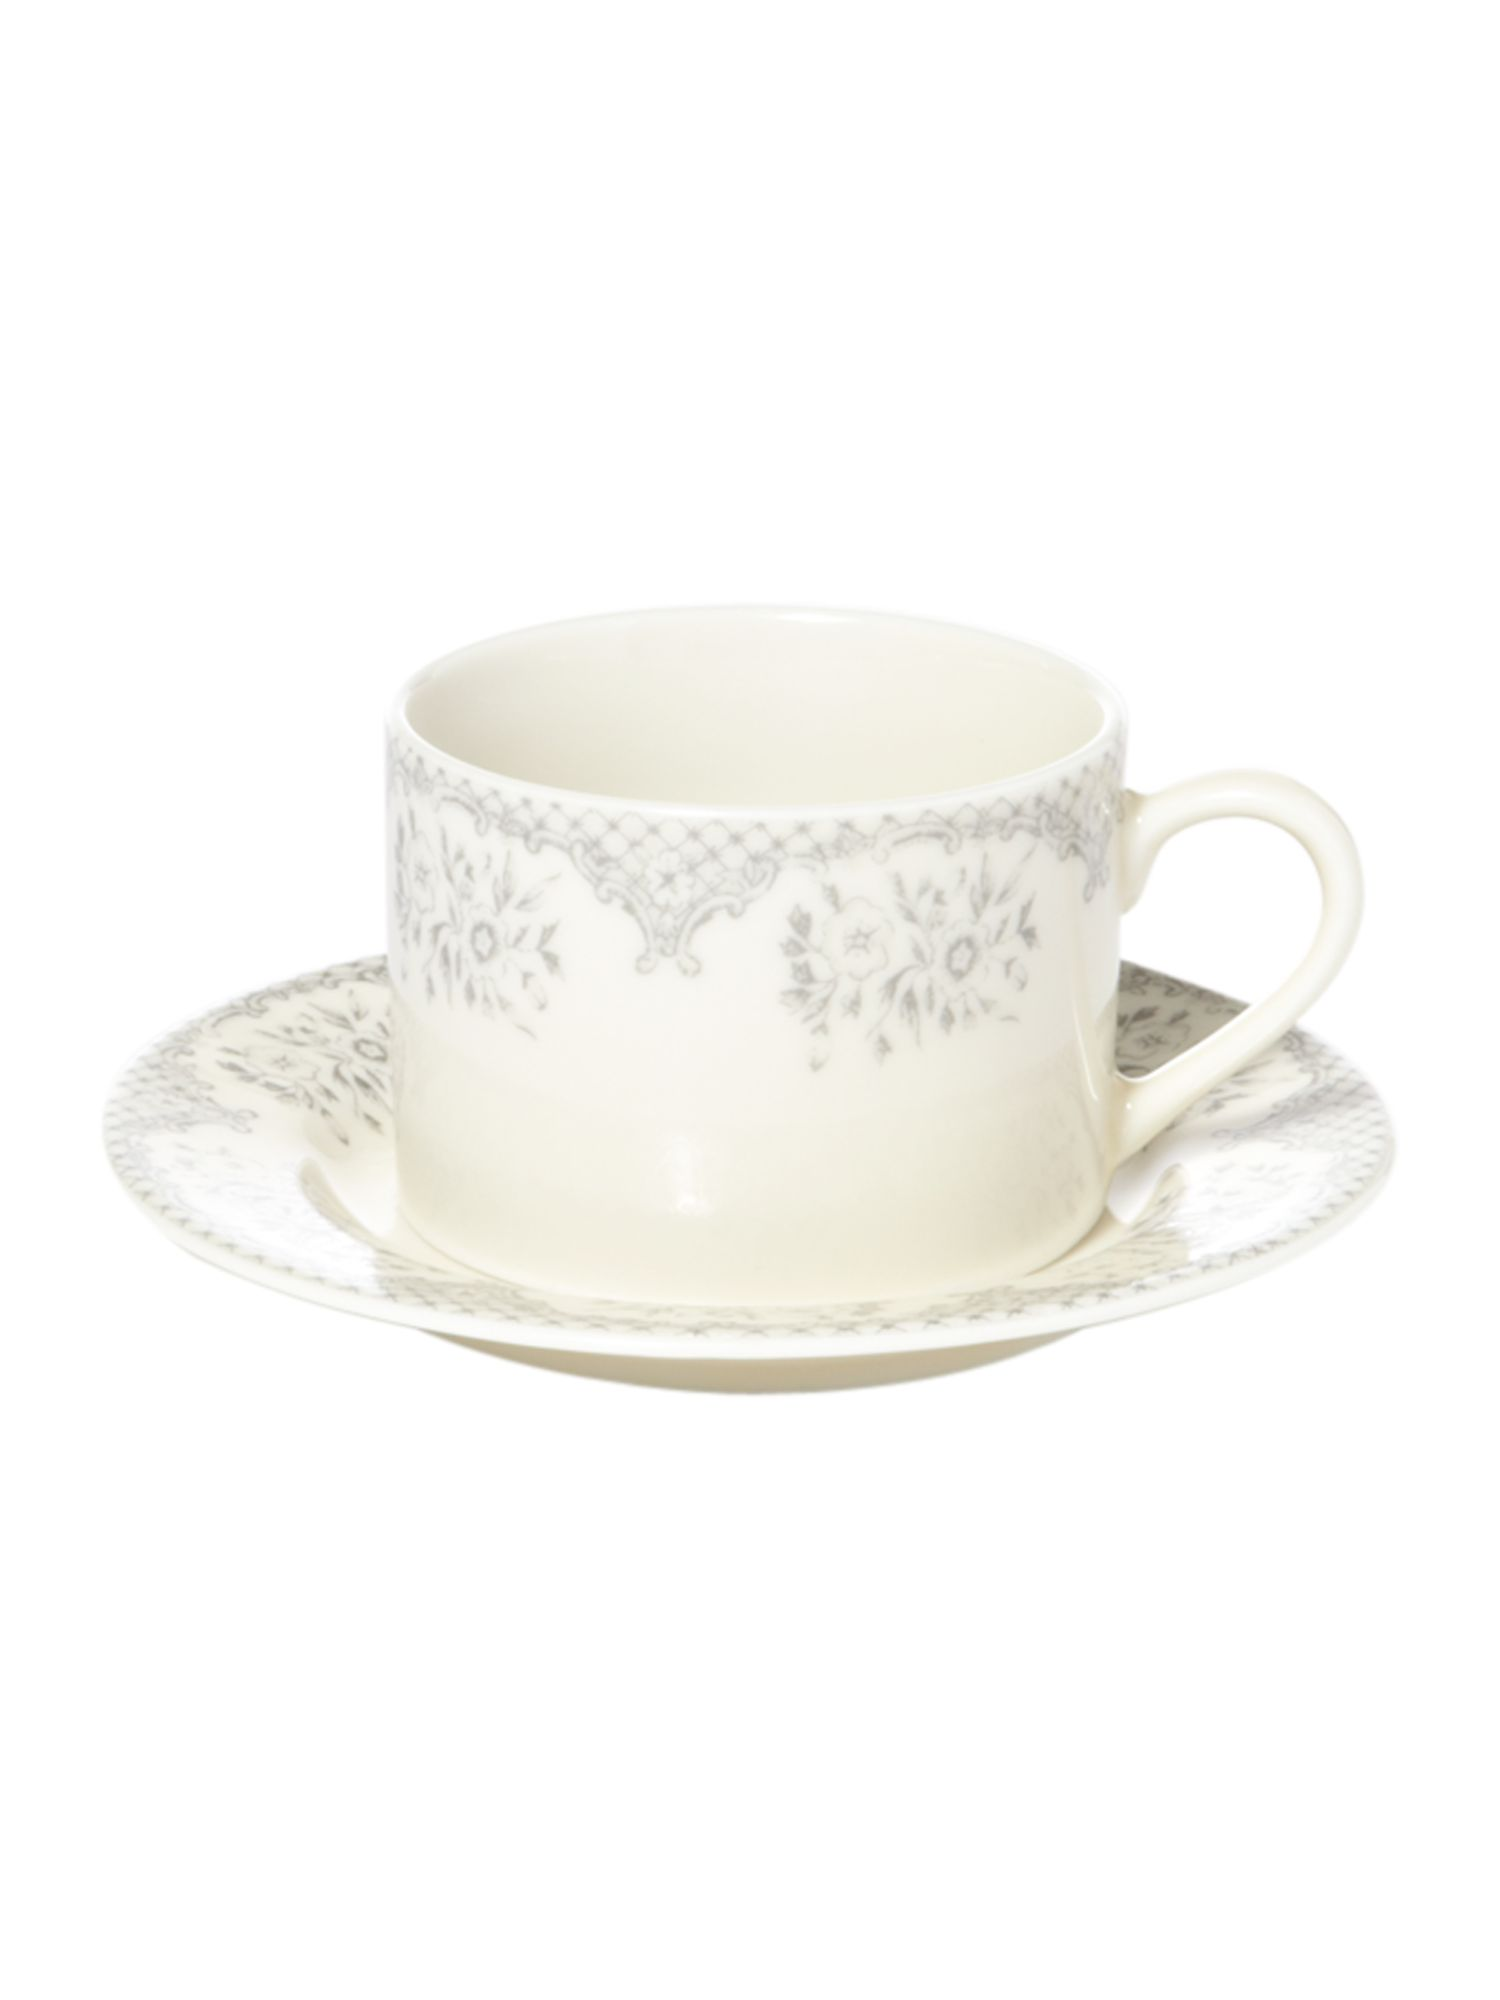 Kew teacup and saucer